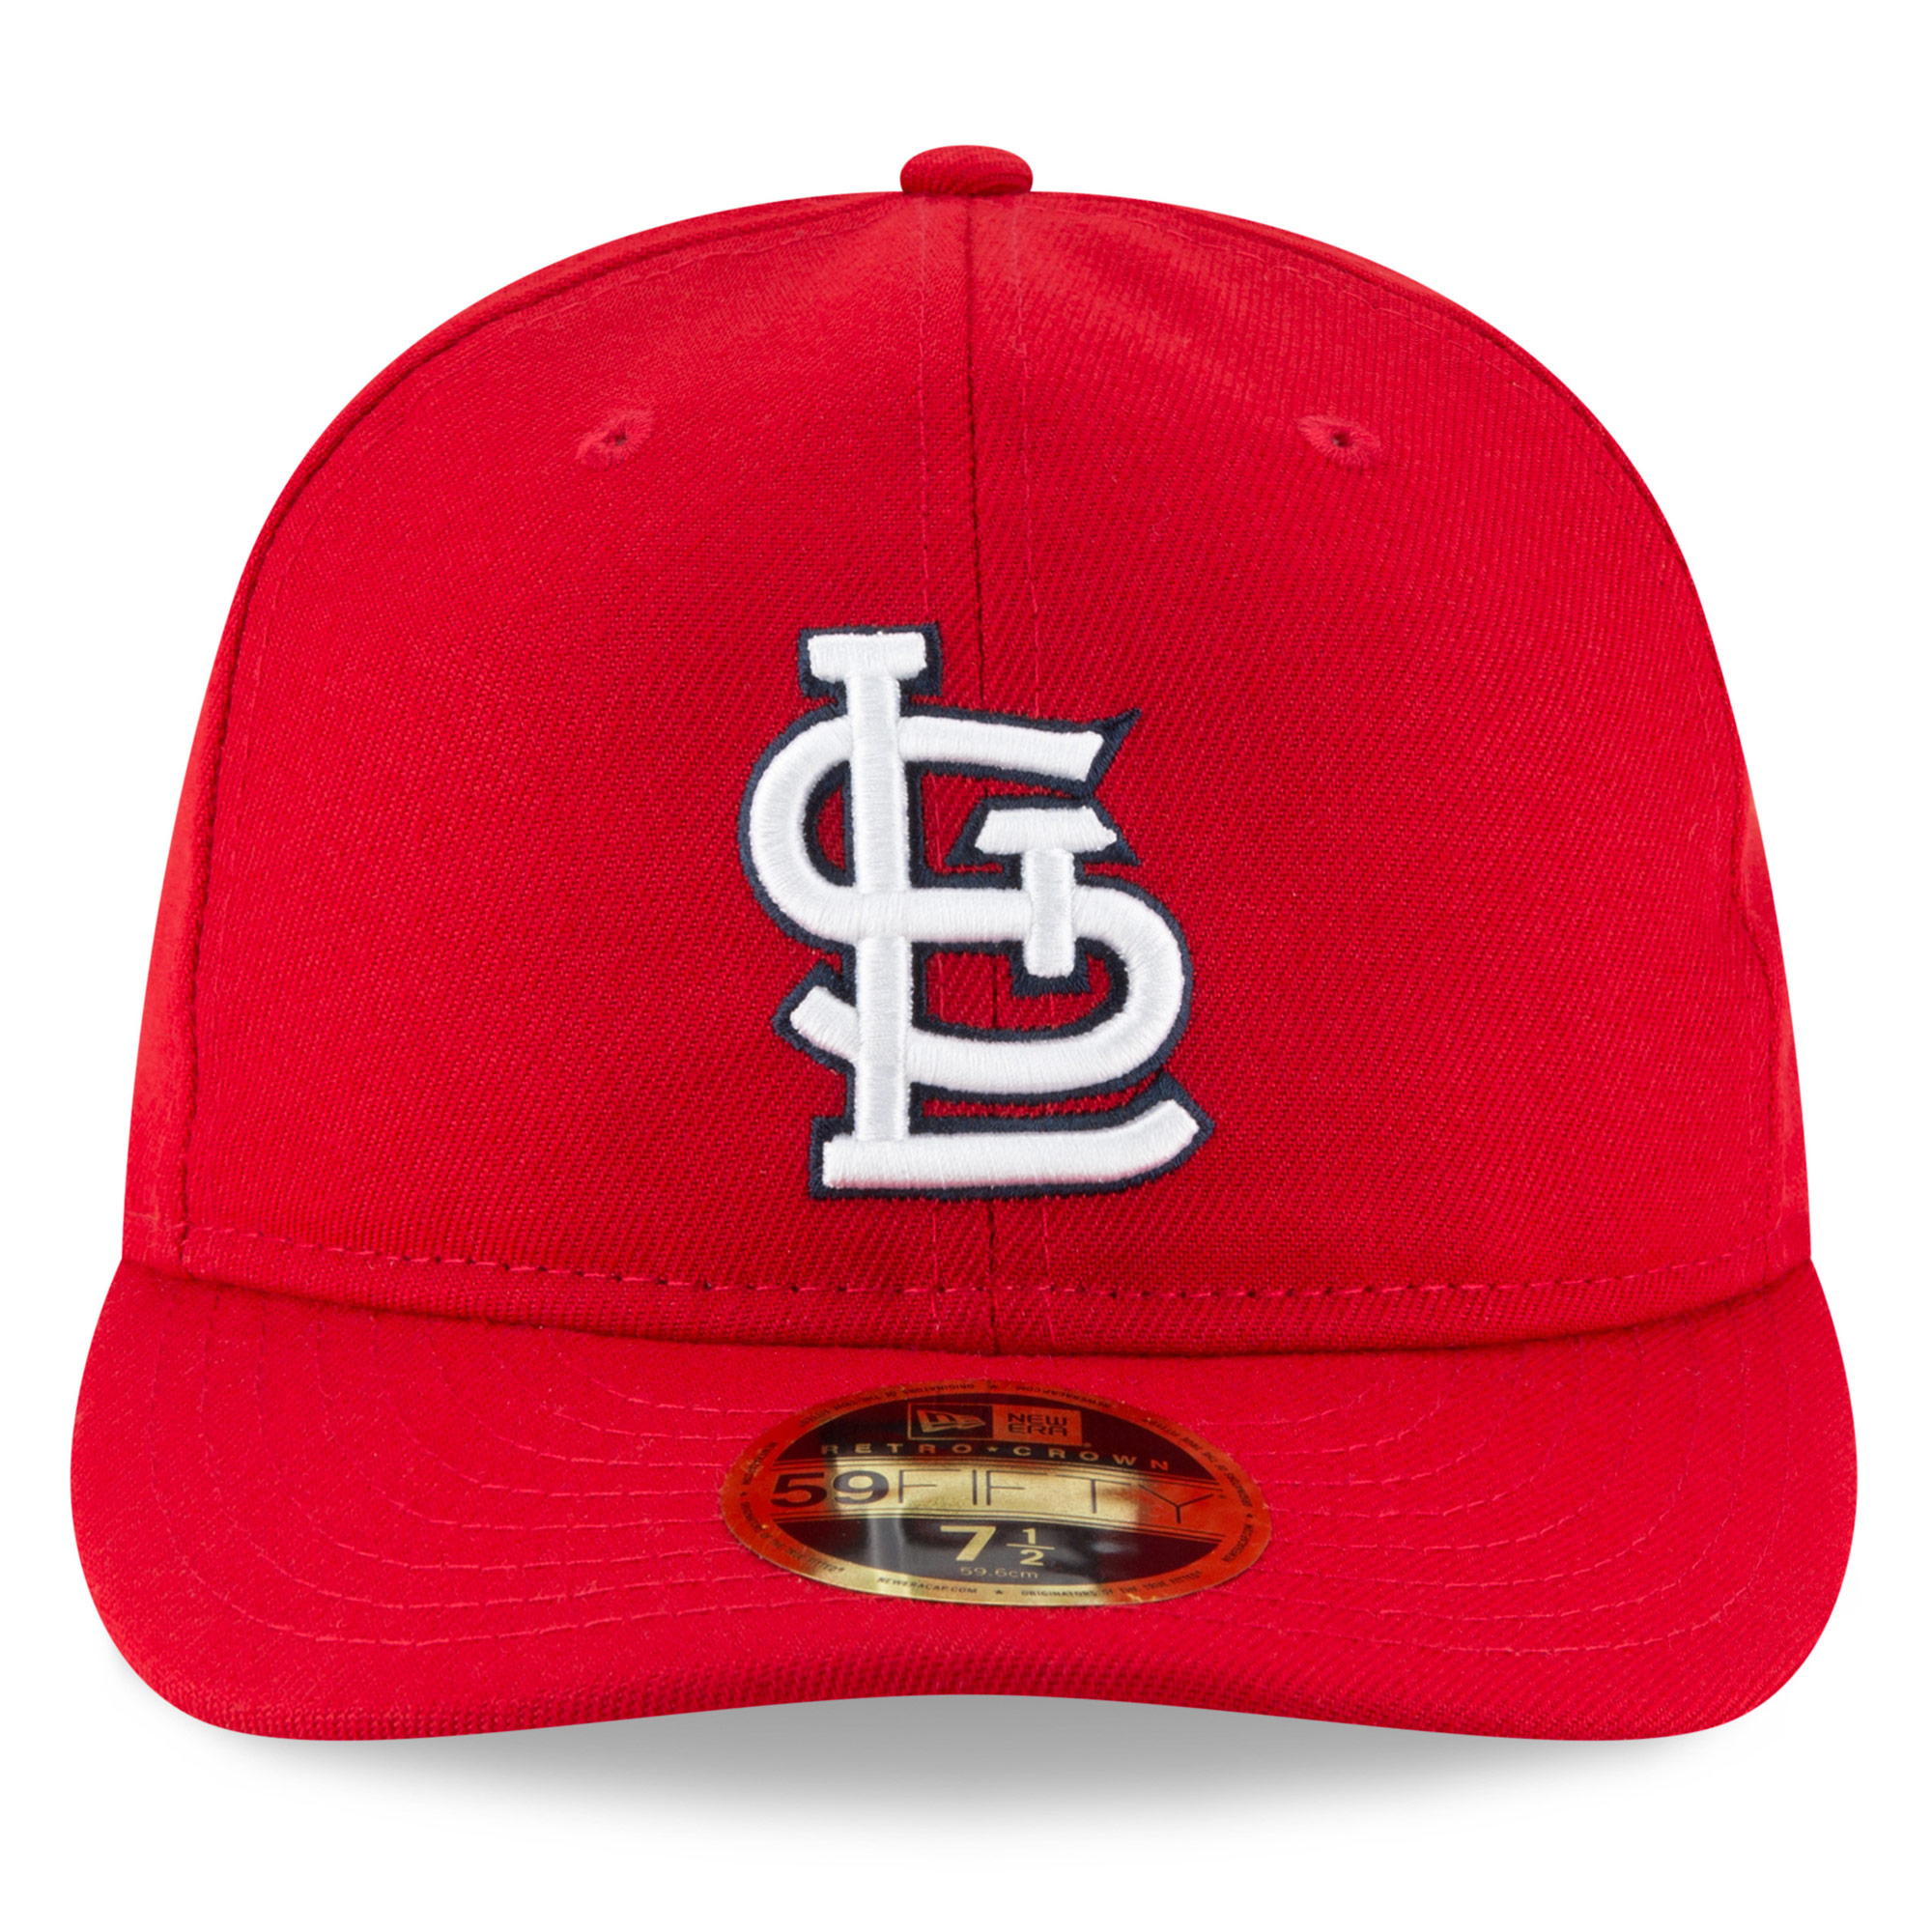 ba351cd8bcd St. Louis Cardinals New Era Fan Retro Low Profile 59FIFTY Fitted Hat - Red  - Walmart.com